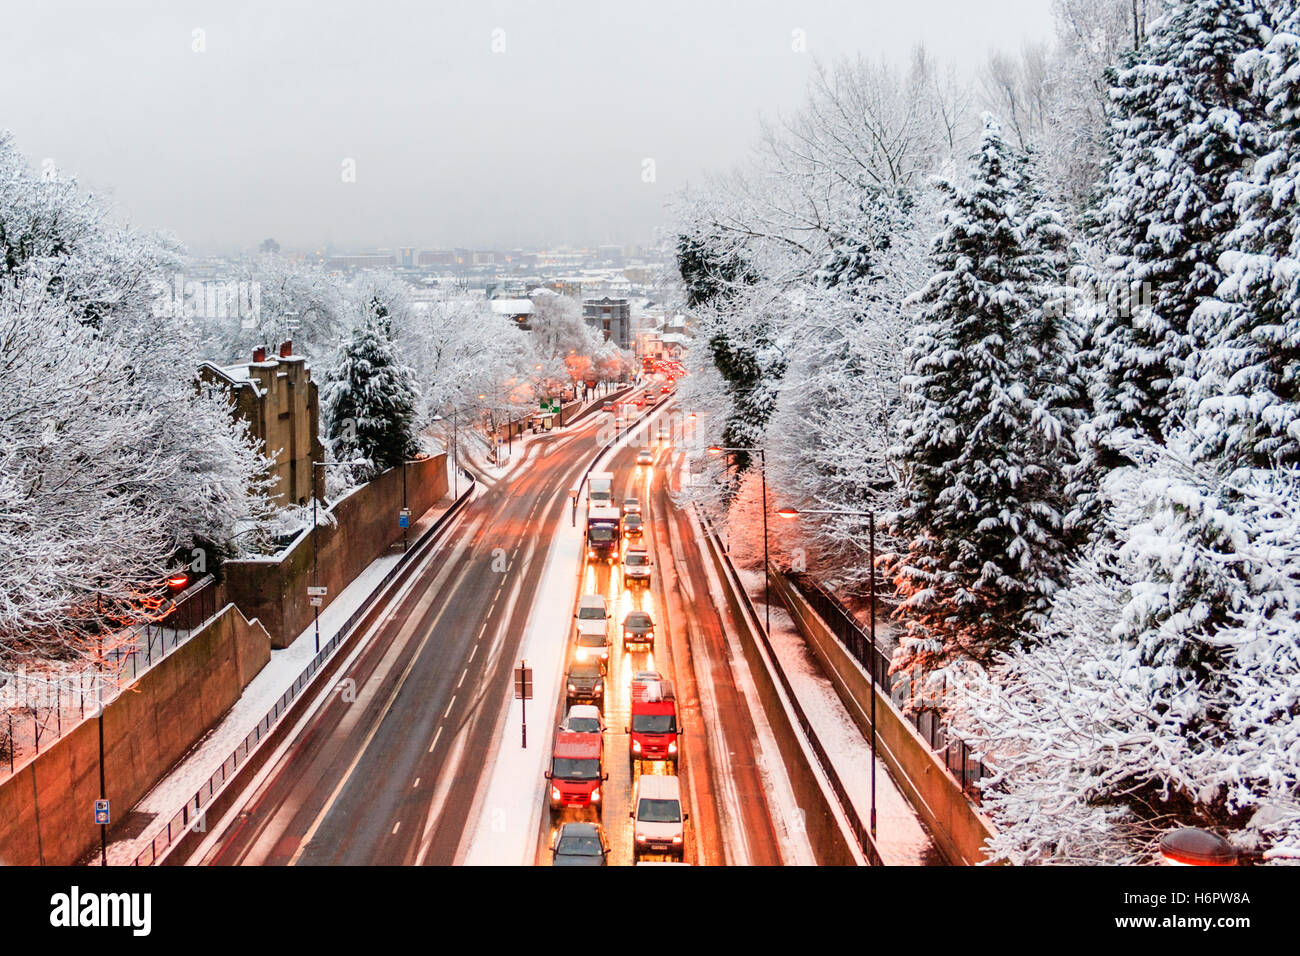 Snow causes delays and congestion on the northbound carriageway of the A1 Archway Road, London, UK, looking south - Stock Image